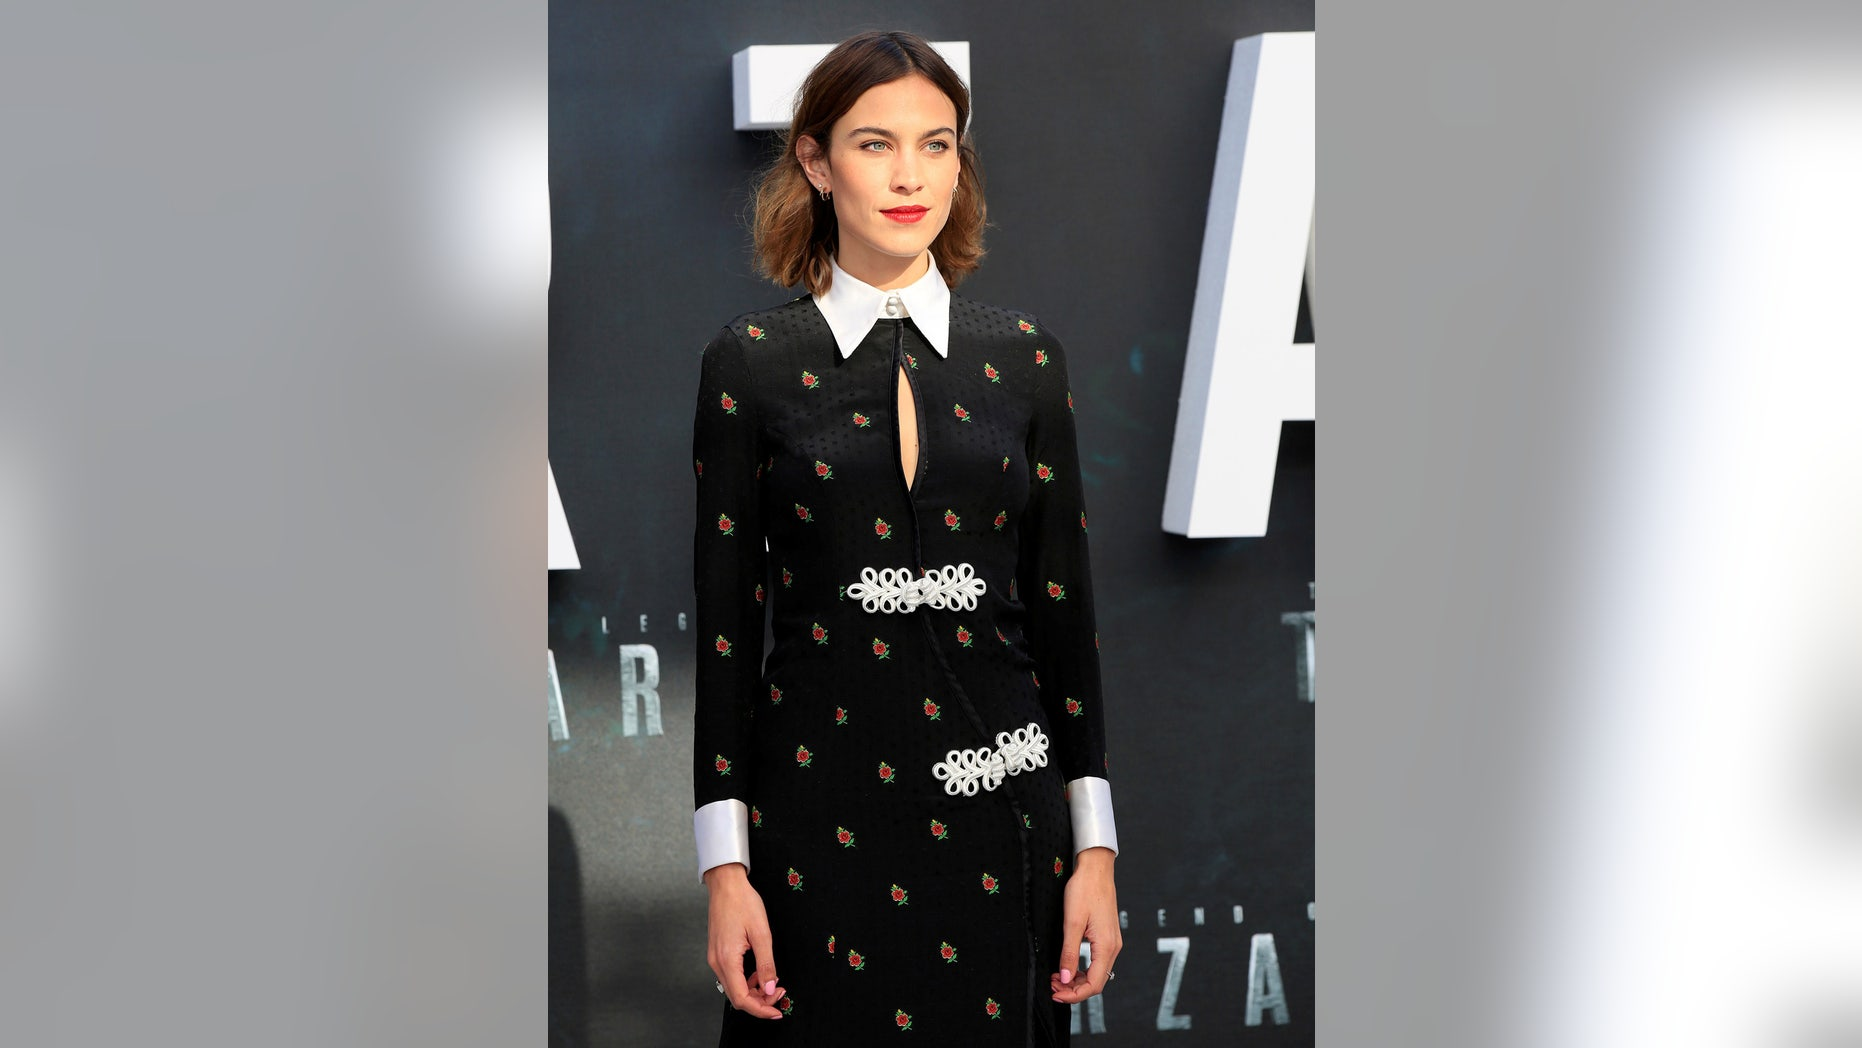 """British model Alexa Chung poses at the European premiere of the film """"The Legend of Tarzan"""" at Leicester Square in London."""